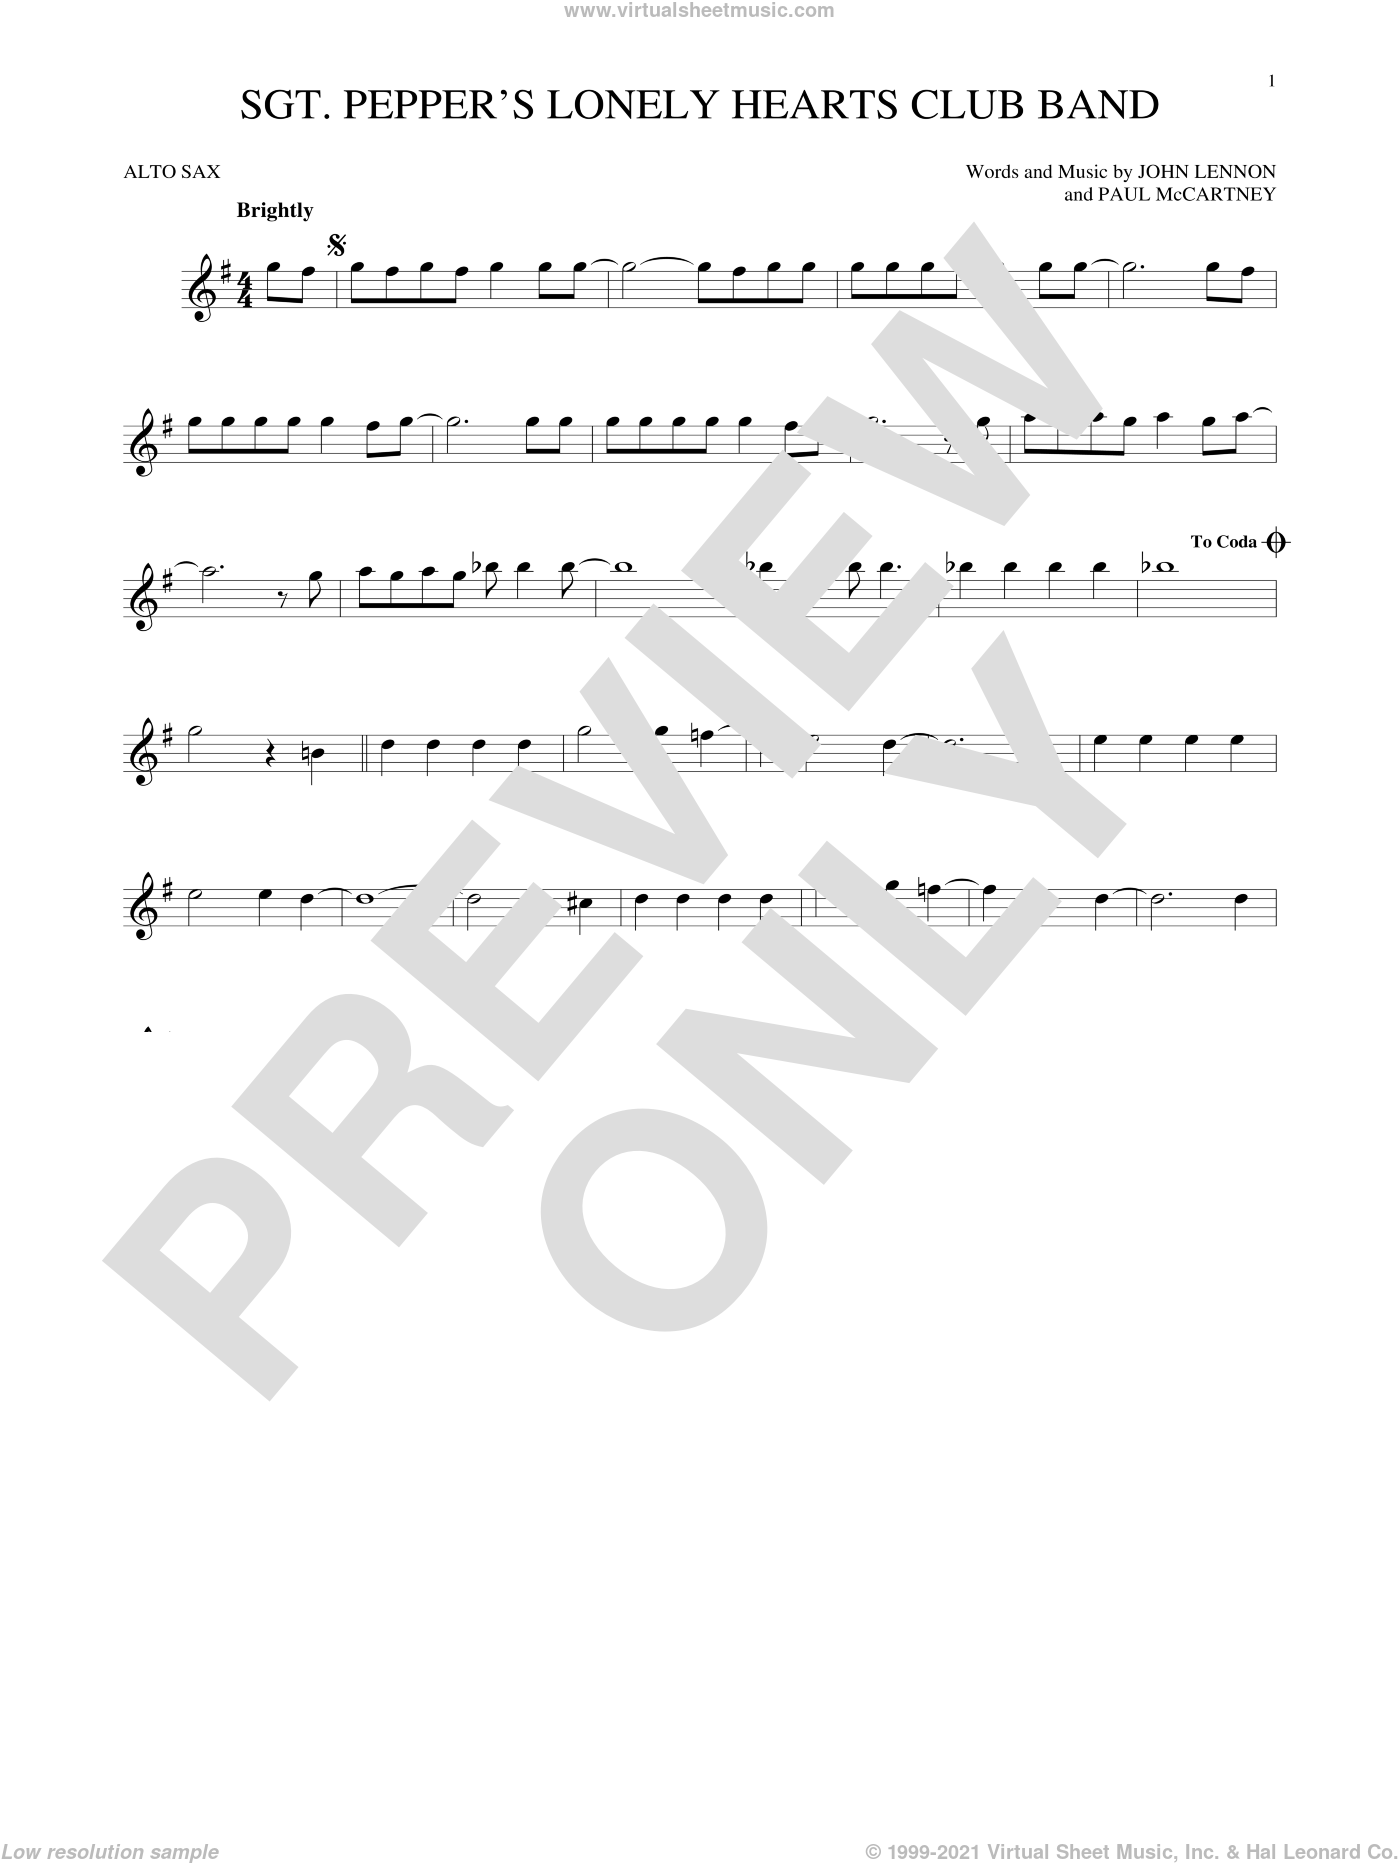 Sgt. Pepper's Lonely Hearts Club Band sheet music for alto saxophone solo by The Beatles, John Lennon and Paul McCartney, intermediate skill level